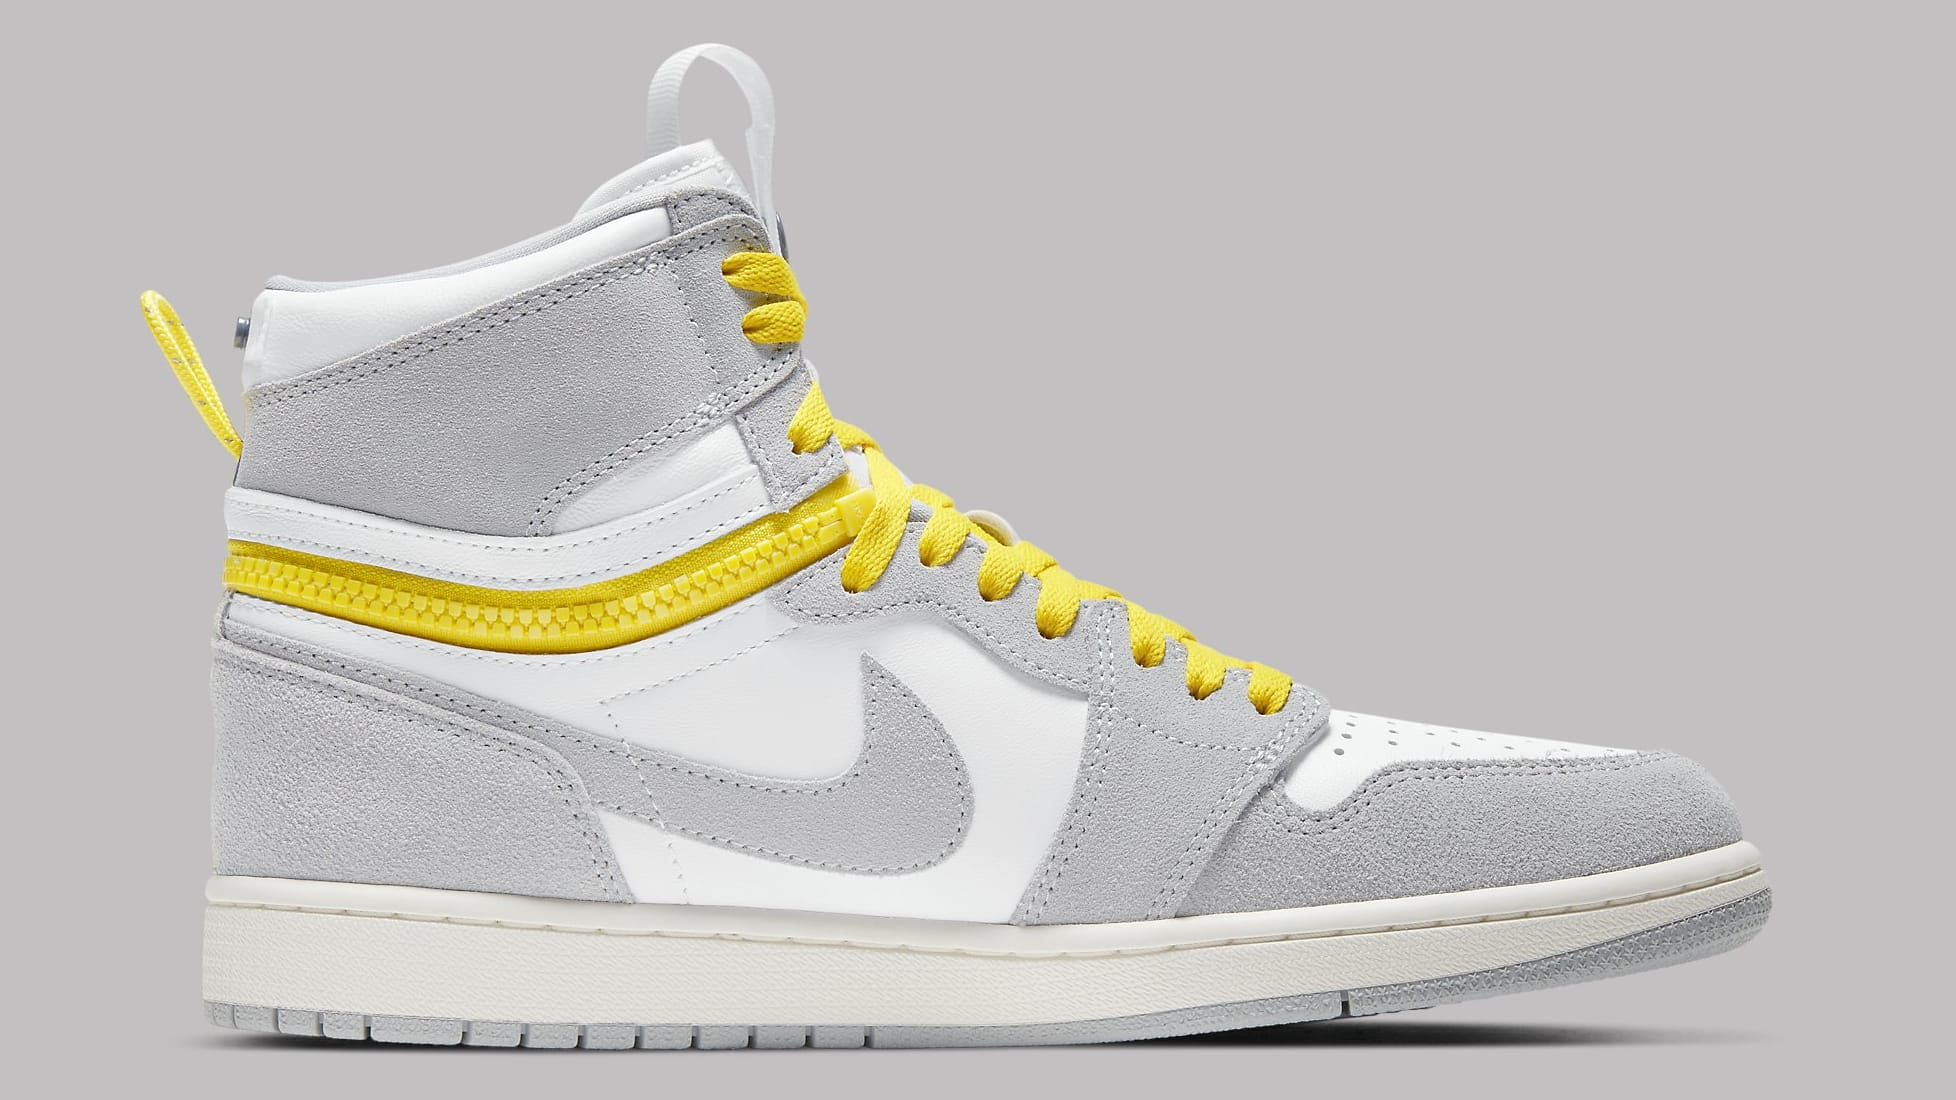 Air Jordan 1 High Switch White Light Smoke Grey Sail Tour Yellow Release Date CW6576-100 Medial